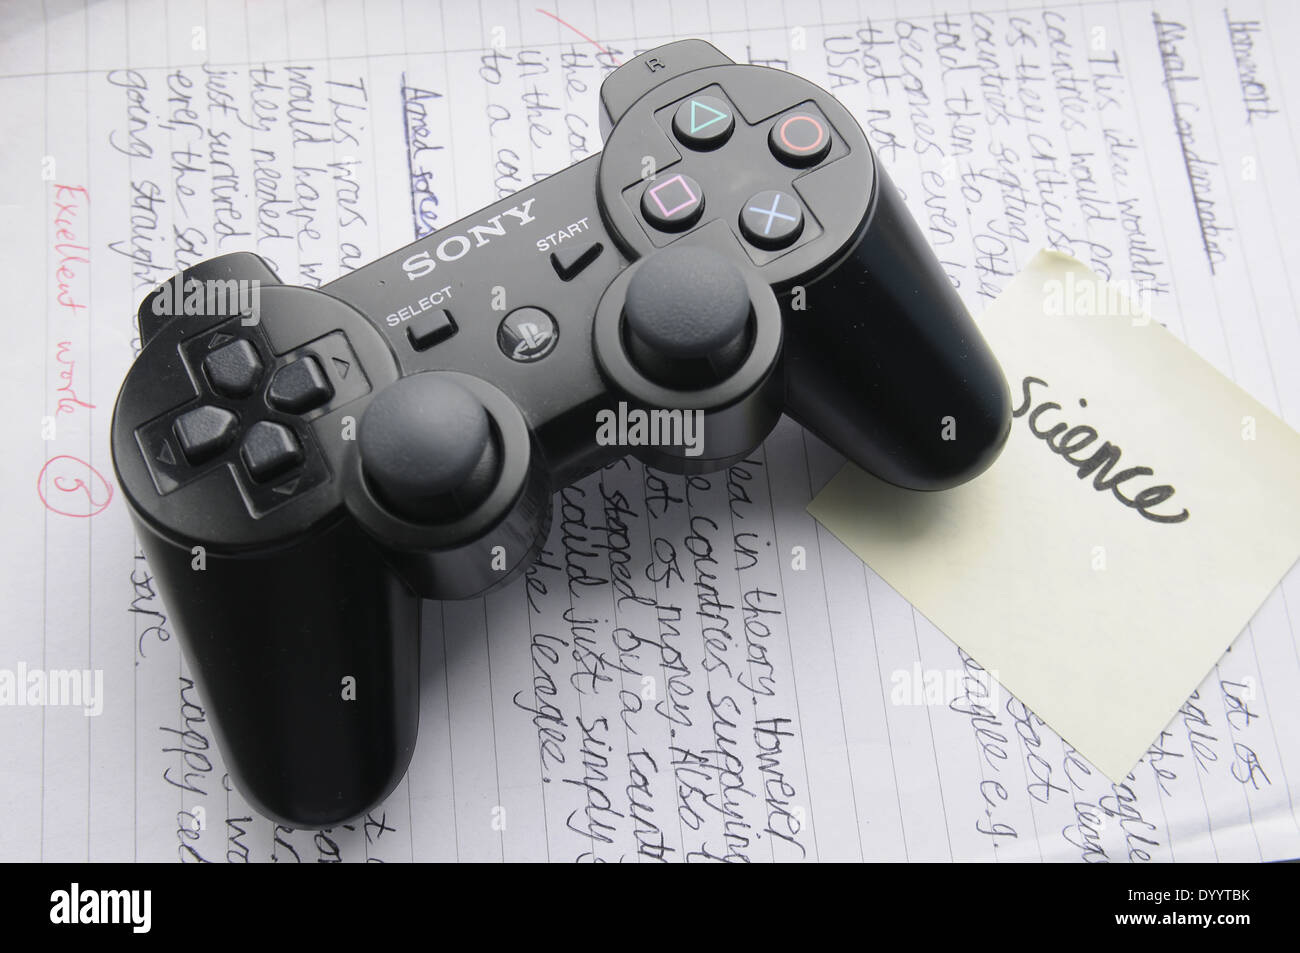 Ps2 Controller Stock Photos Images Alamy Sony Playstation 2 Game Against A Page Of Homework Image